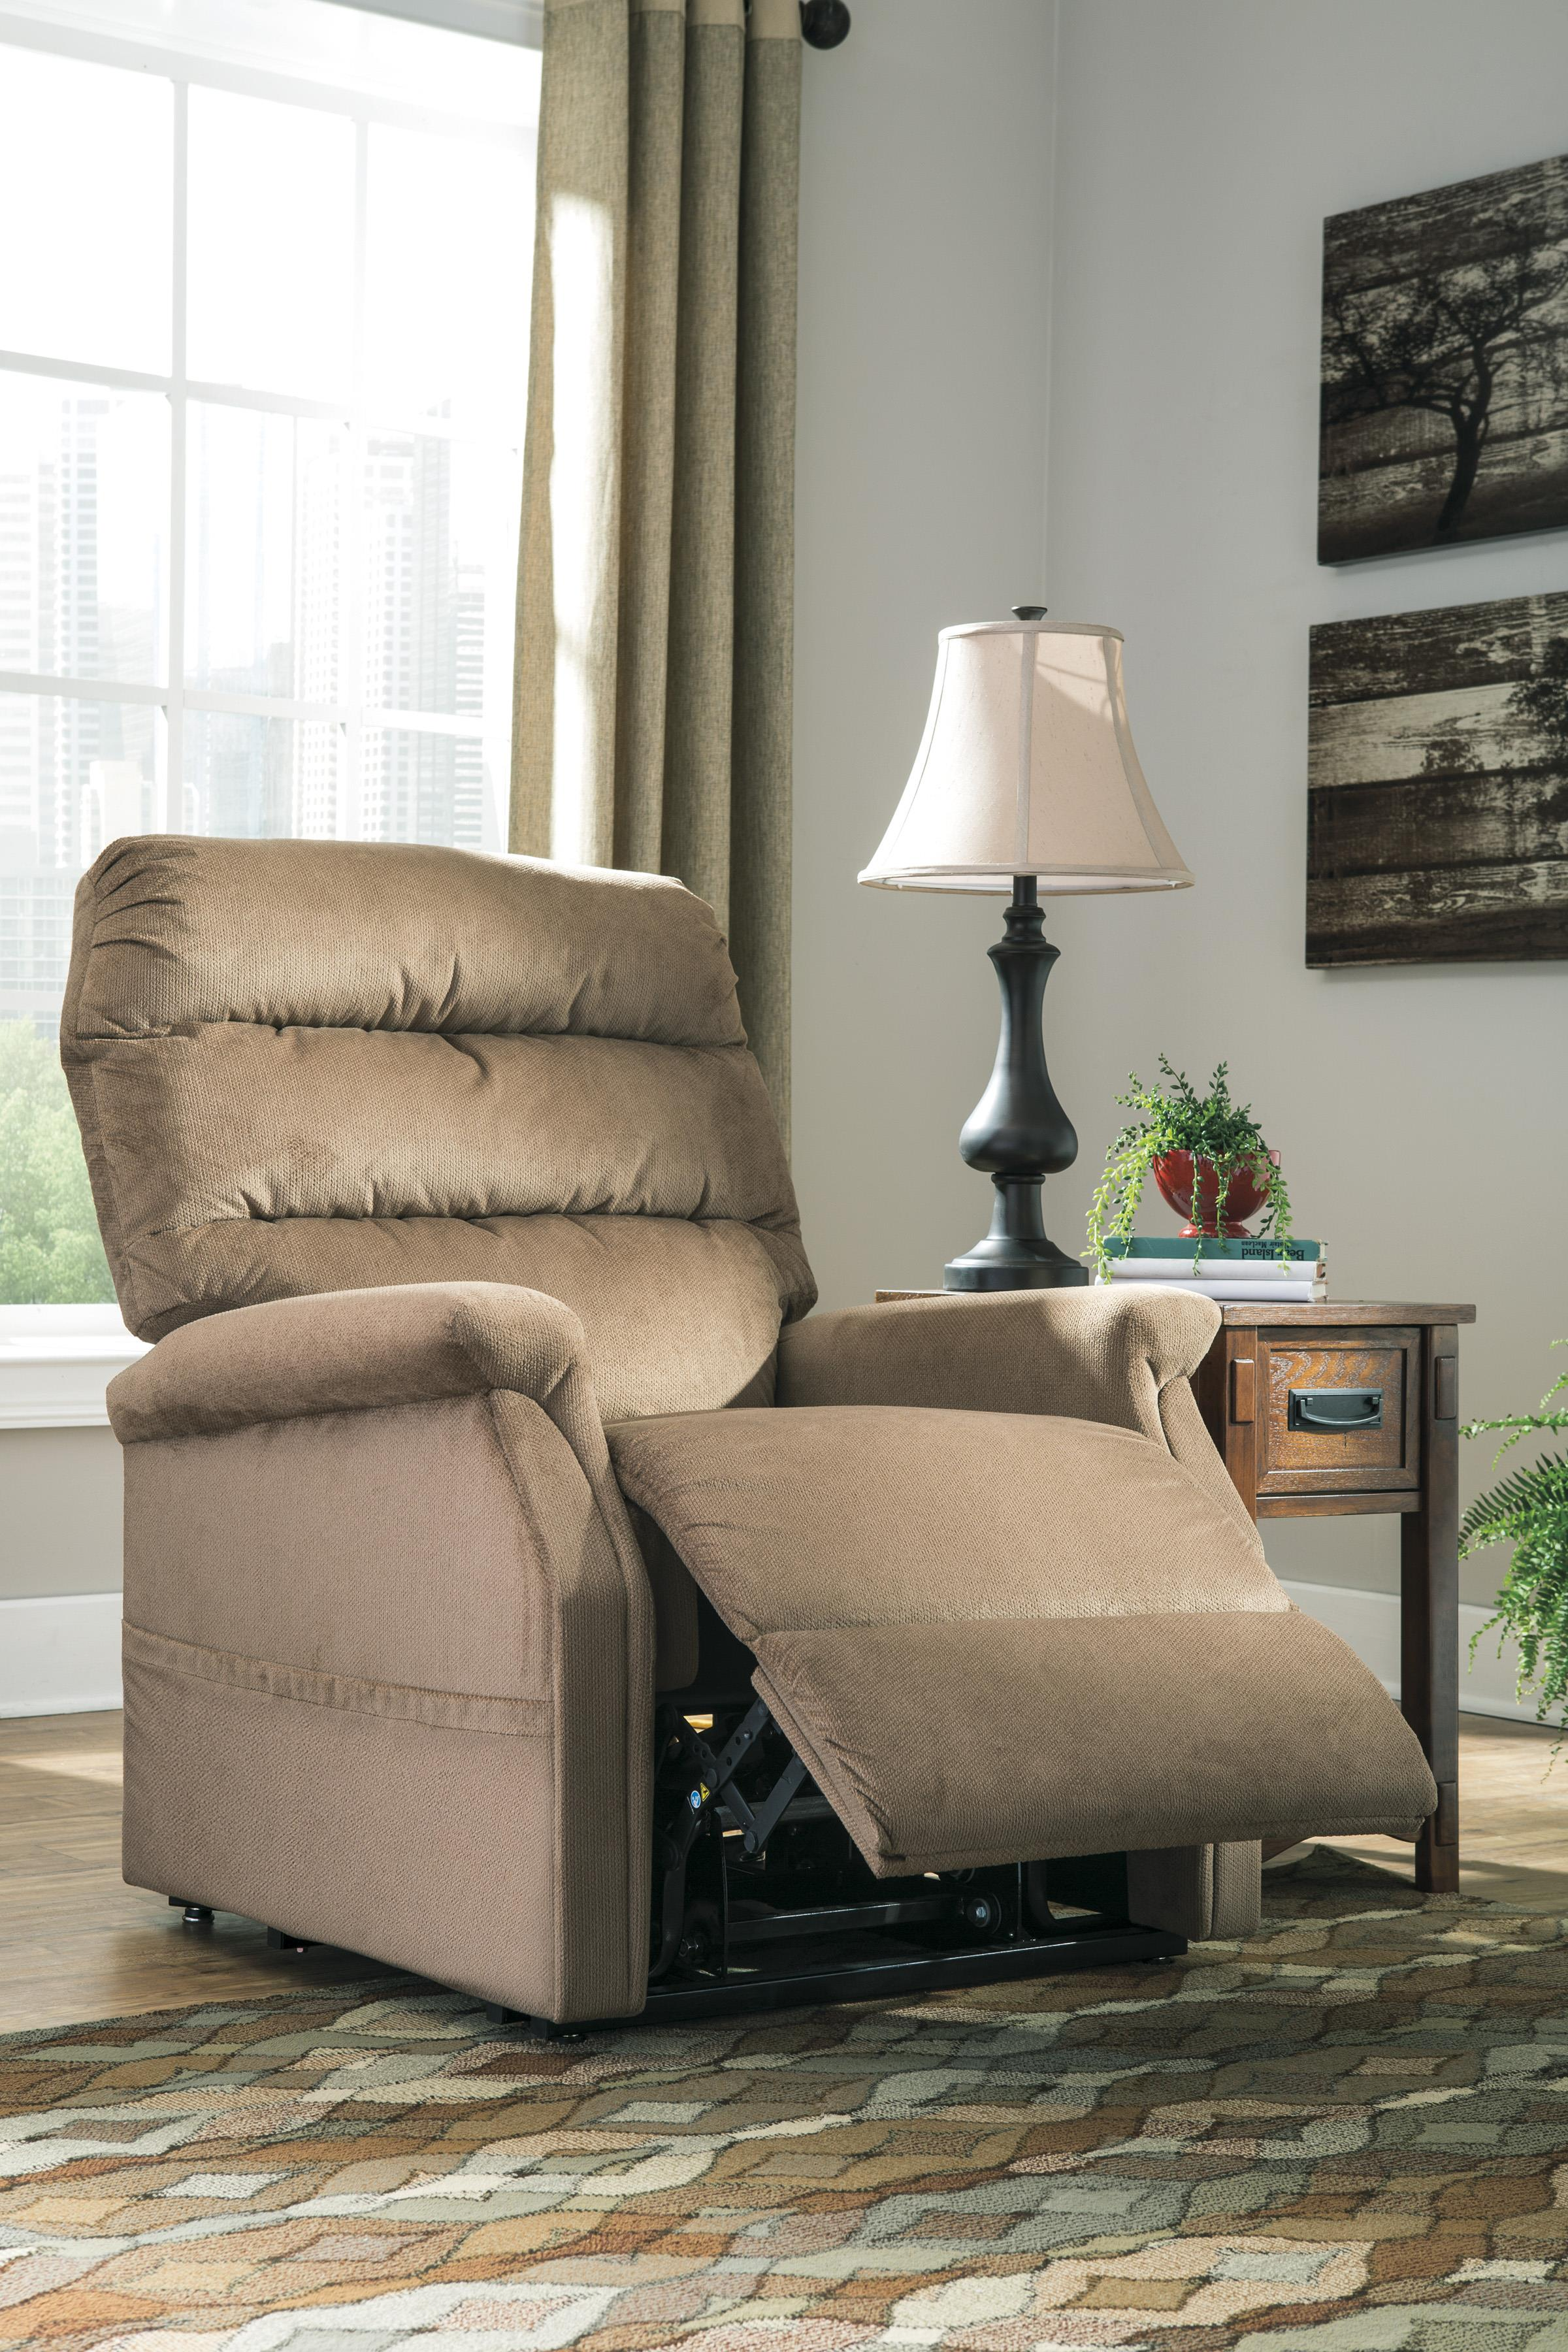 power lift recliner with remote control